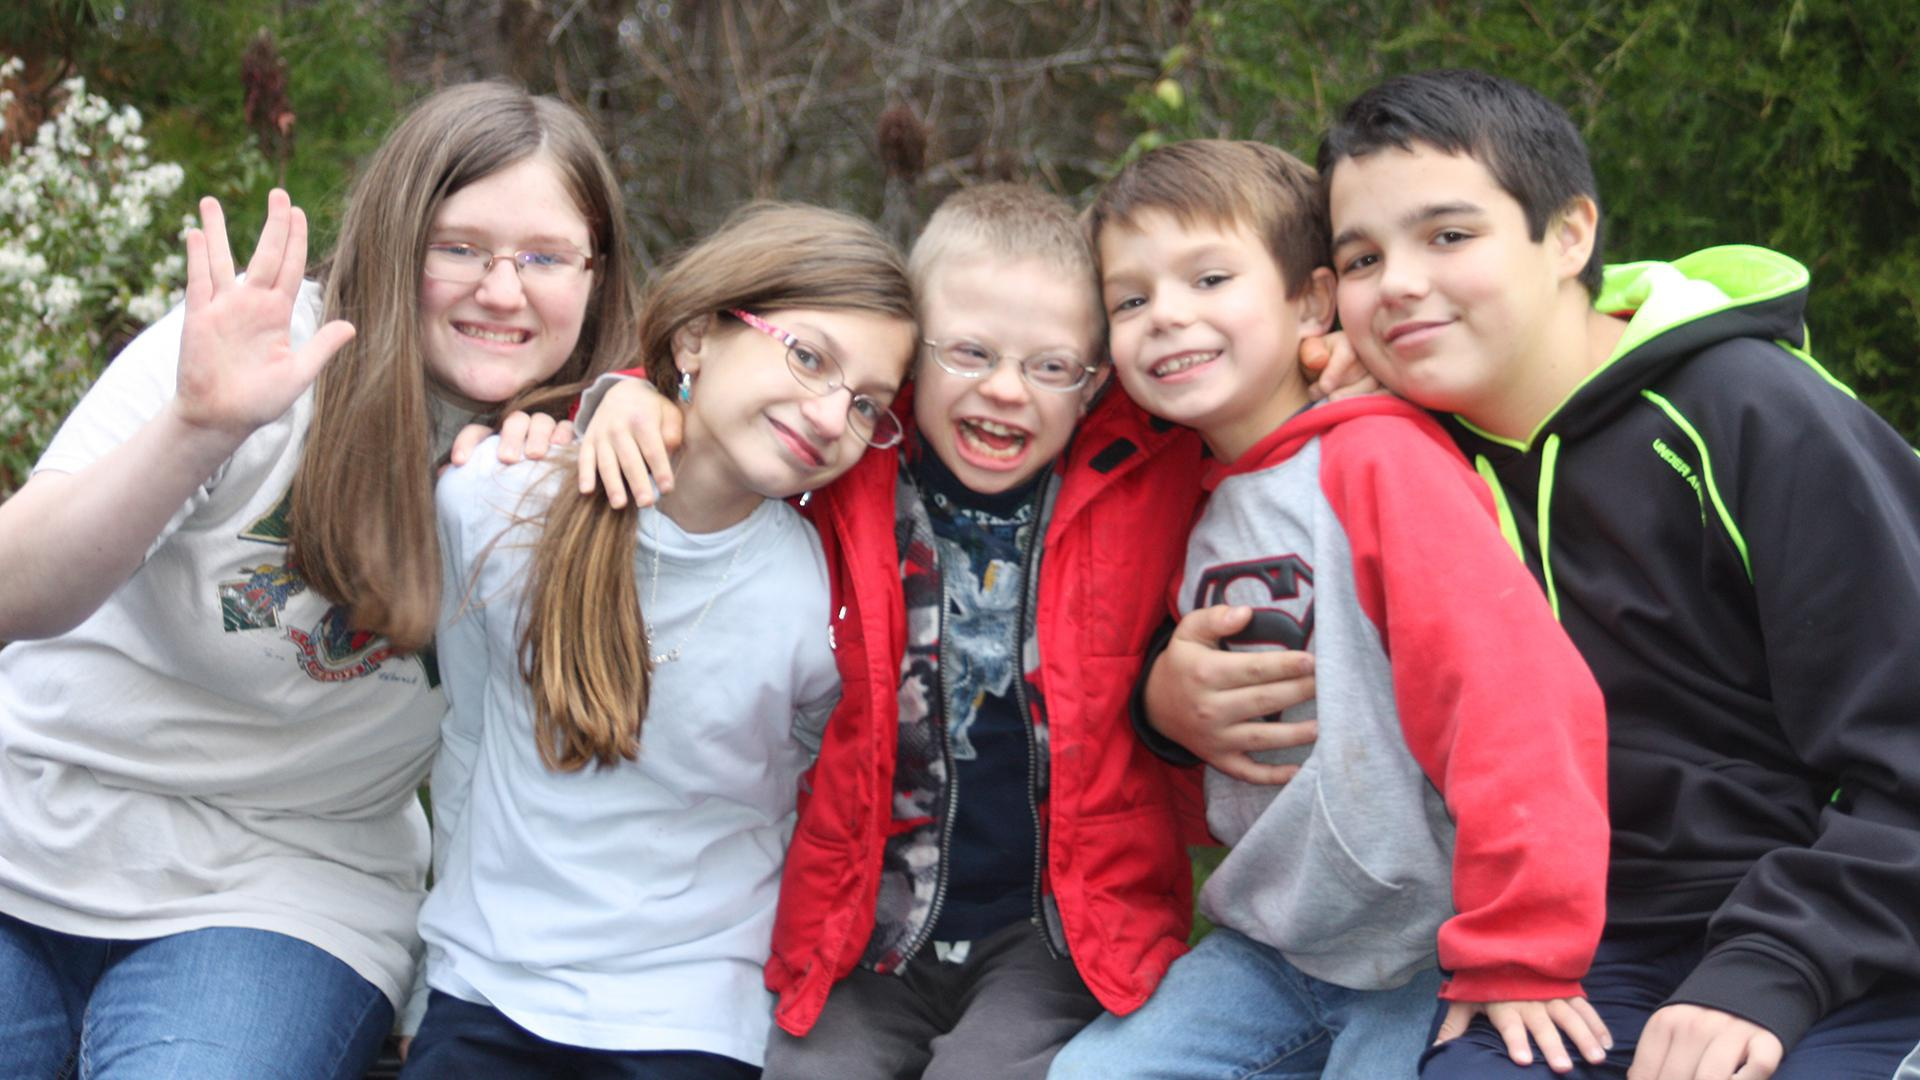 Down syndrome: Why I don't want my child to hug everyone